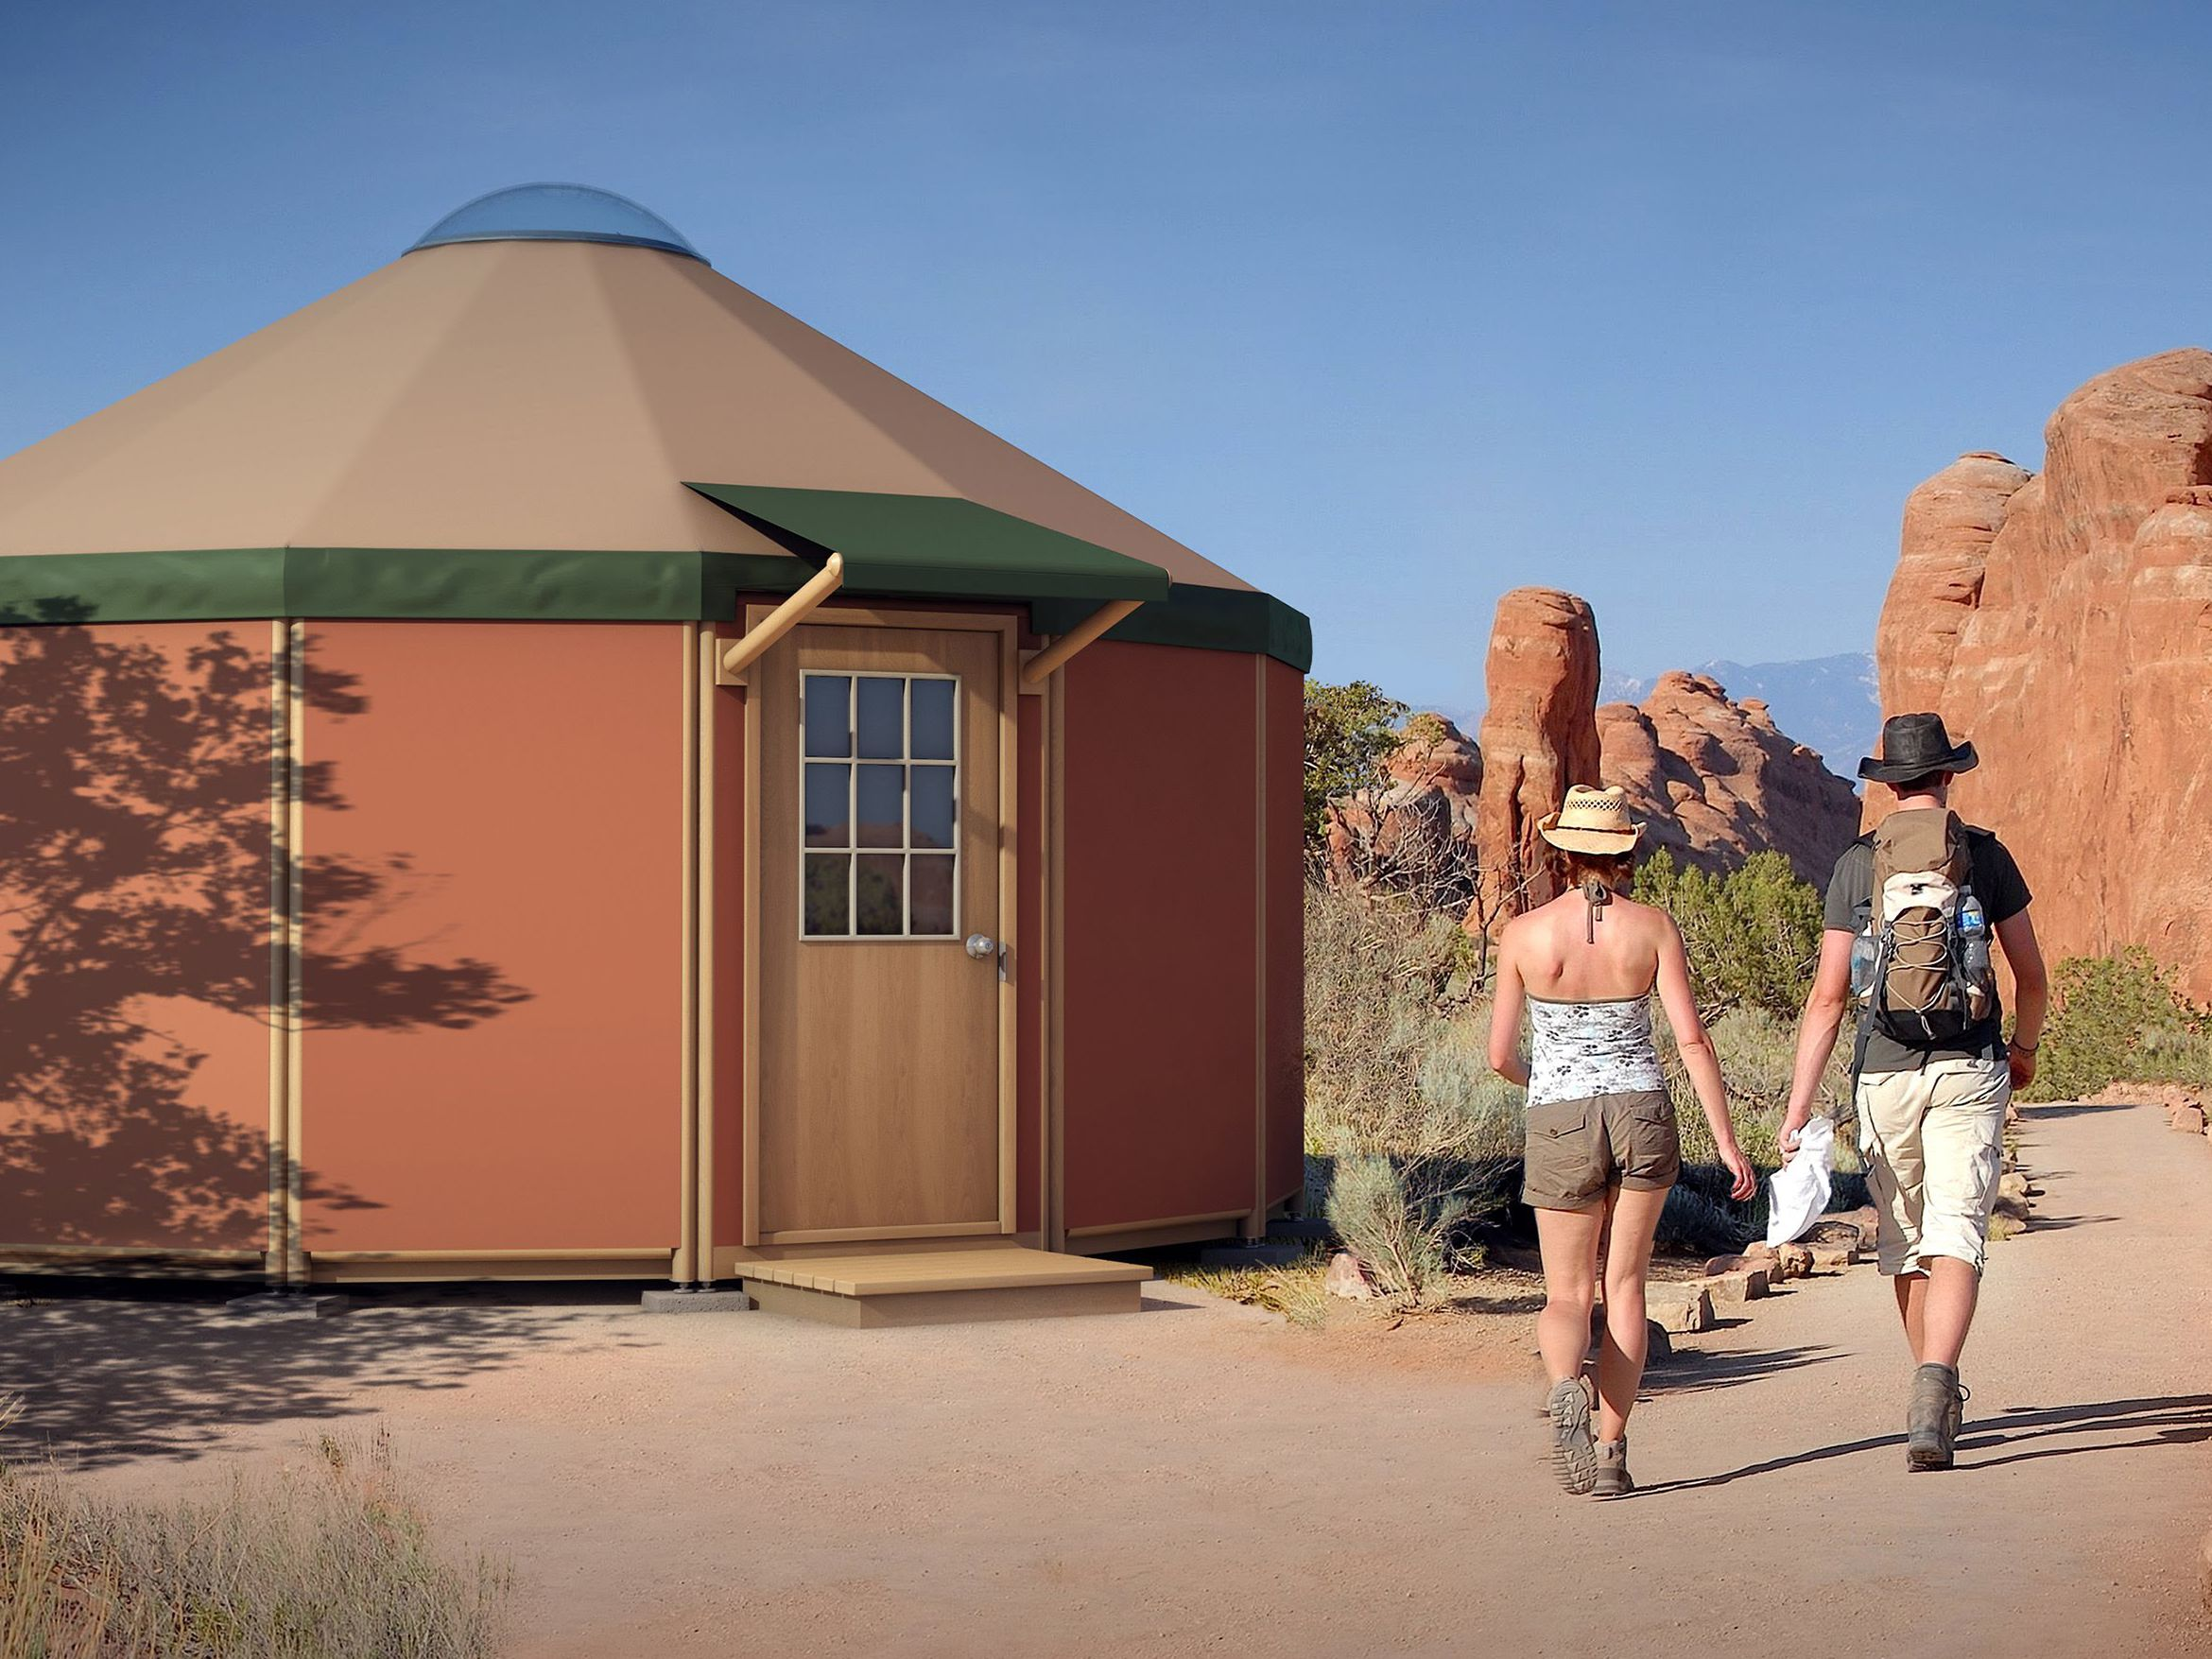 5 Yurt Kits For Modern Nomads Unfollow yurt tent to stop getting updates on your ebay feed. 5 yurt kits for modern nomads